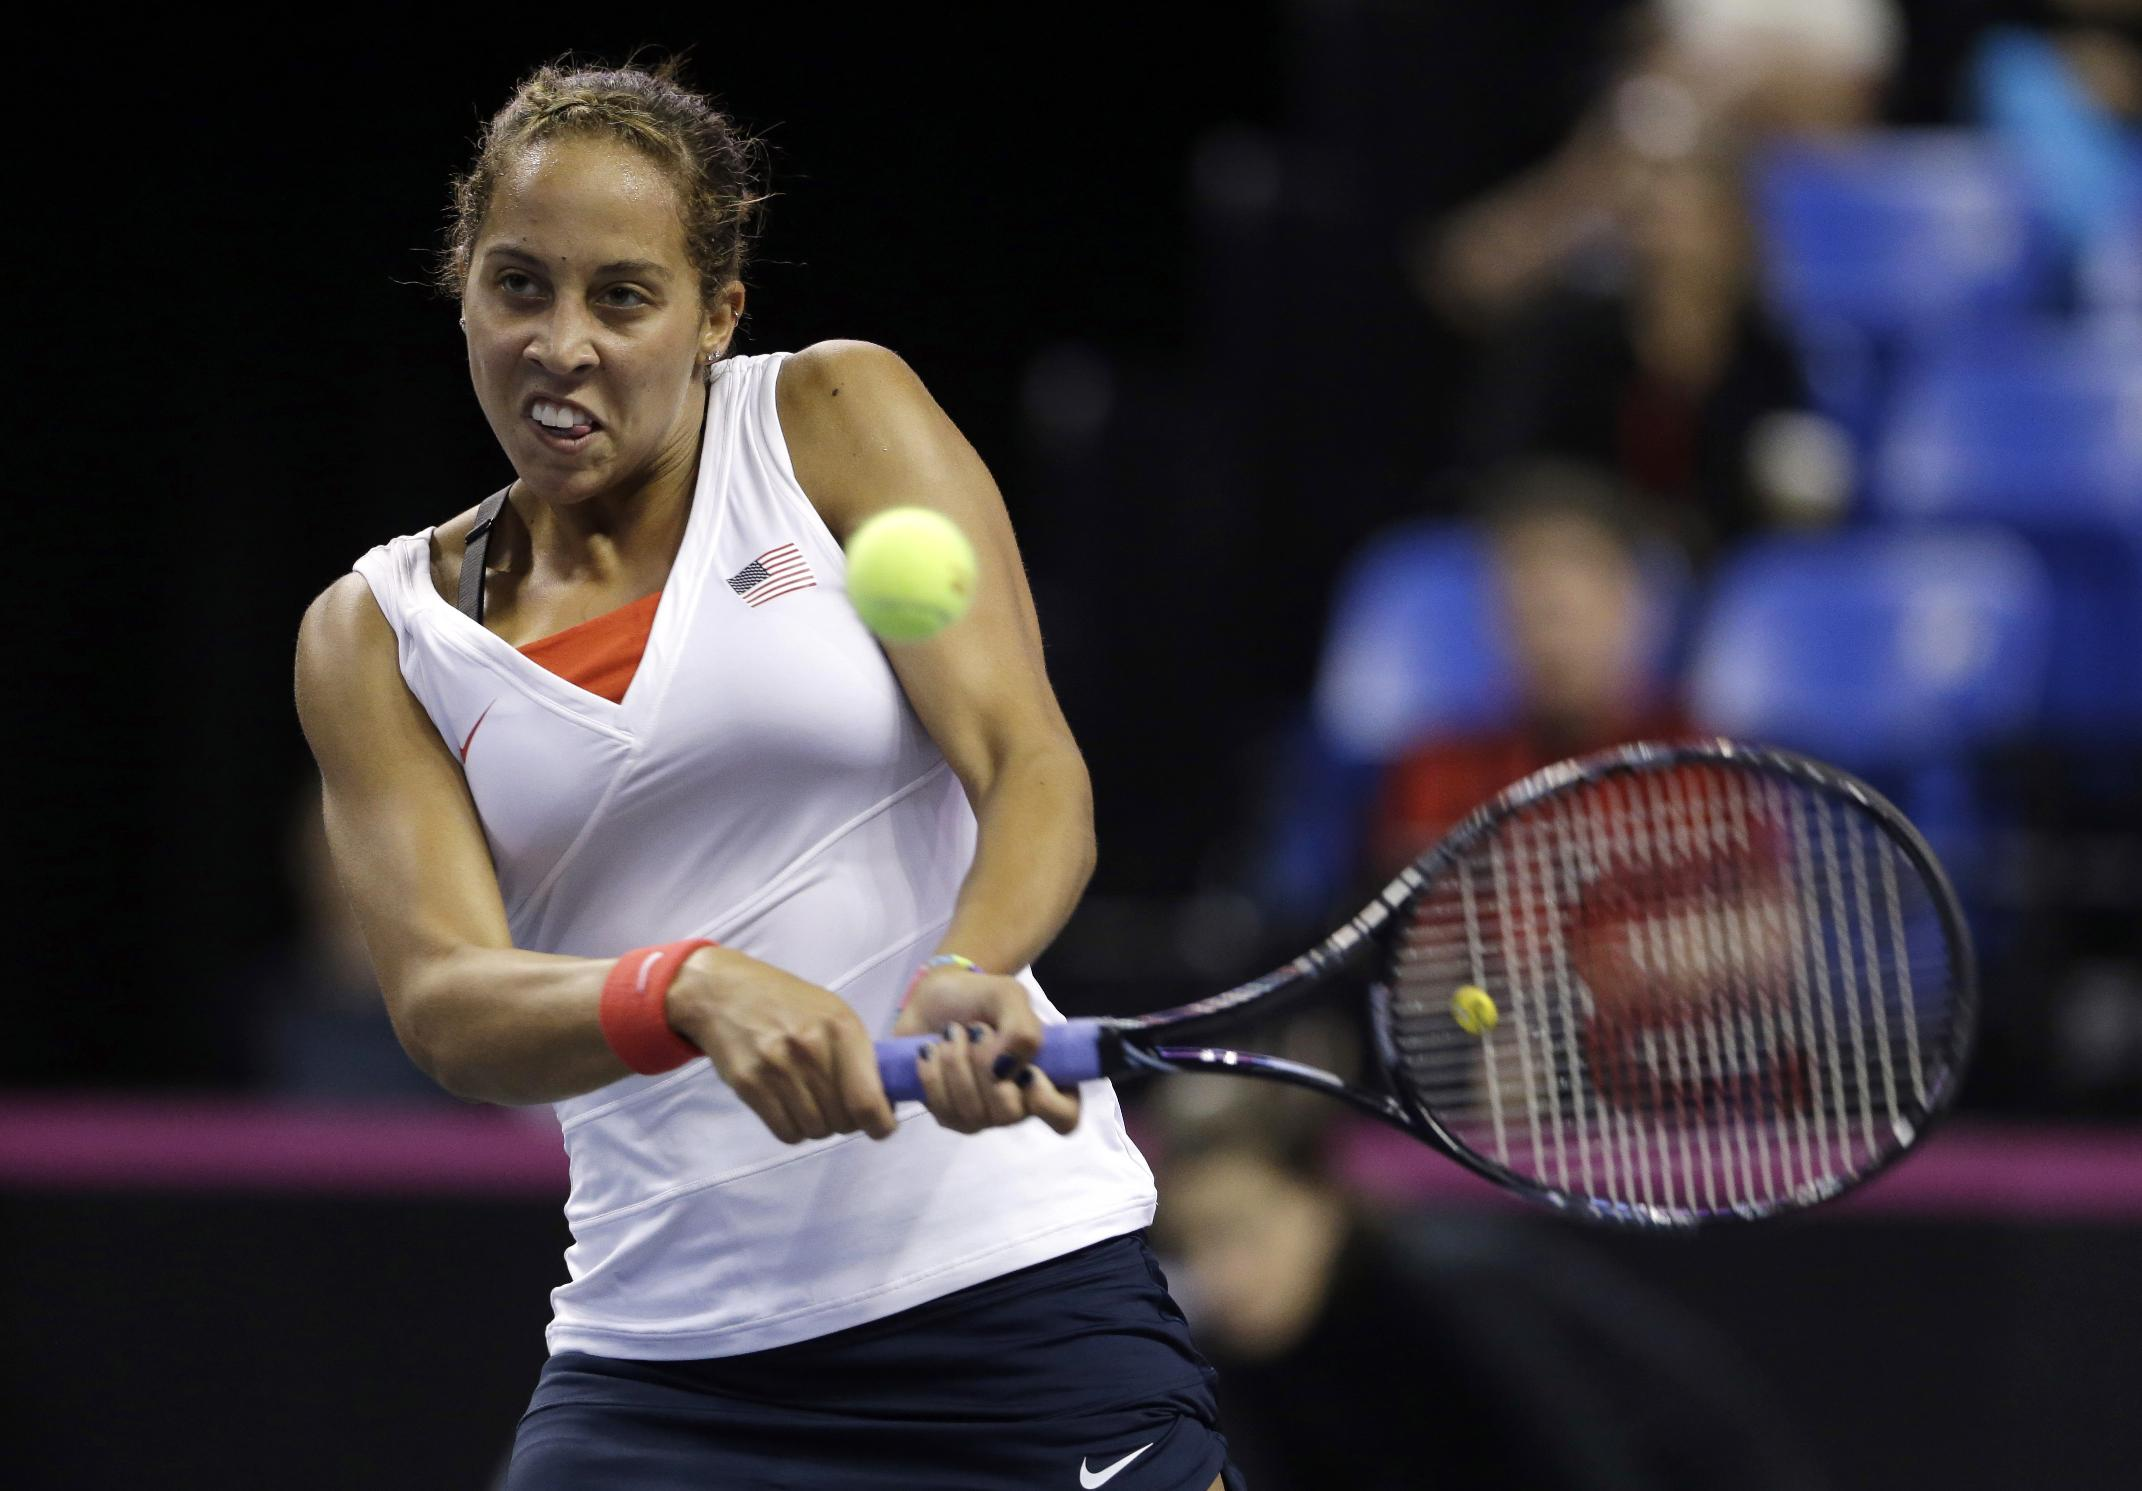 United States' Madison Keys returns the ball to France's Alize Cornet during a Fed Cup singles world group playoff tennis match Saturday, April 19, 2014, in St. Louis. Keys defeated Cornet 6-7 (4), 7-6 (4), 6-3